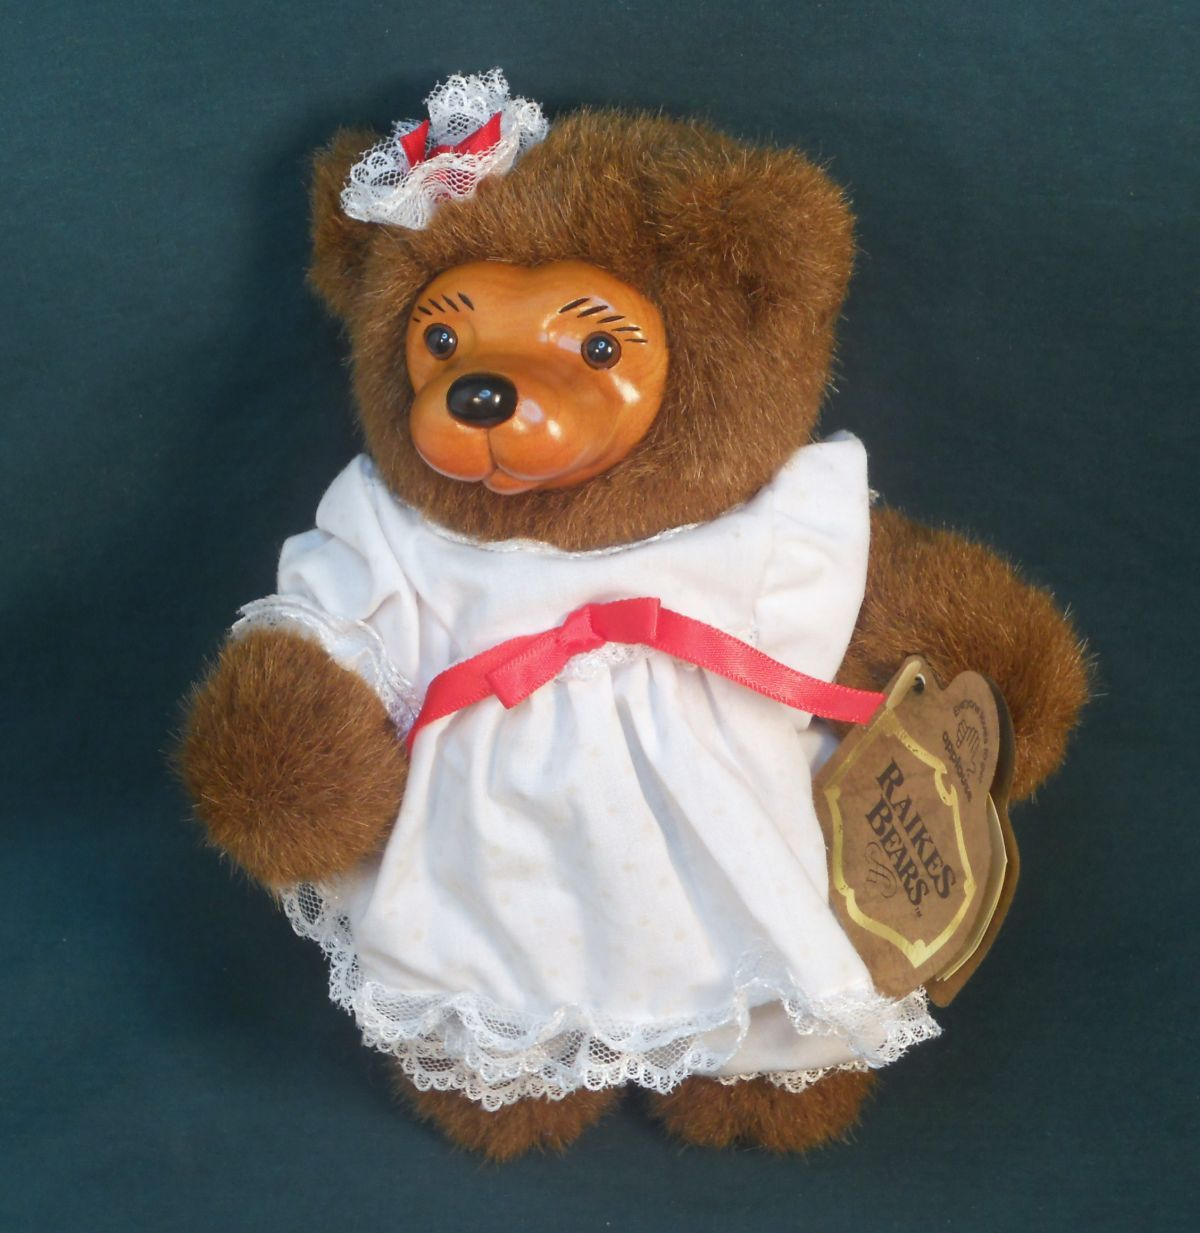 Robert Raikes Collector's Club Bear Tammy 1992 to 1996